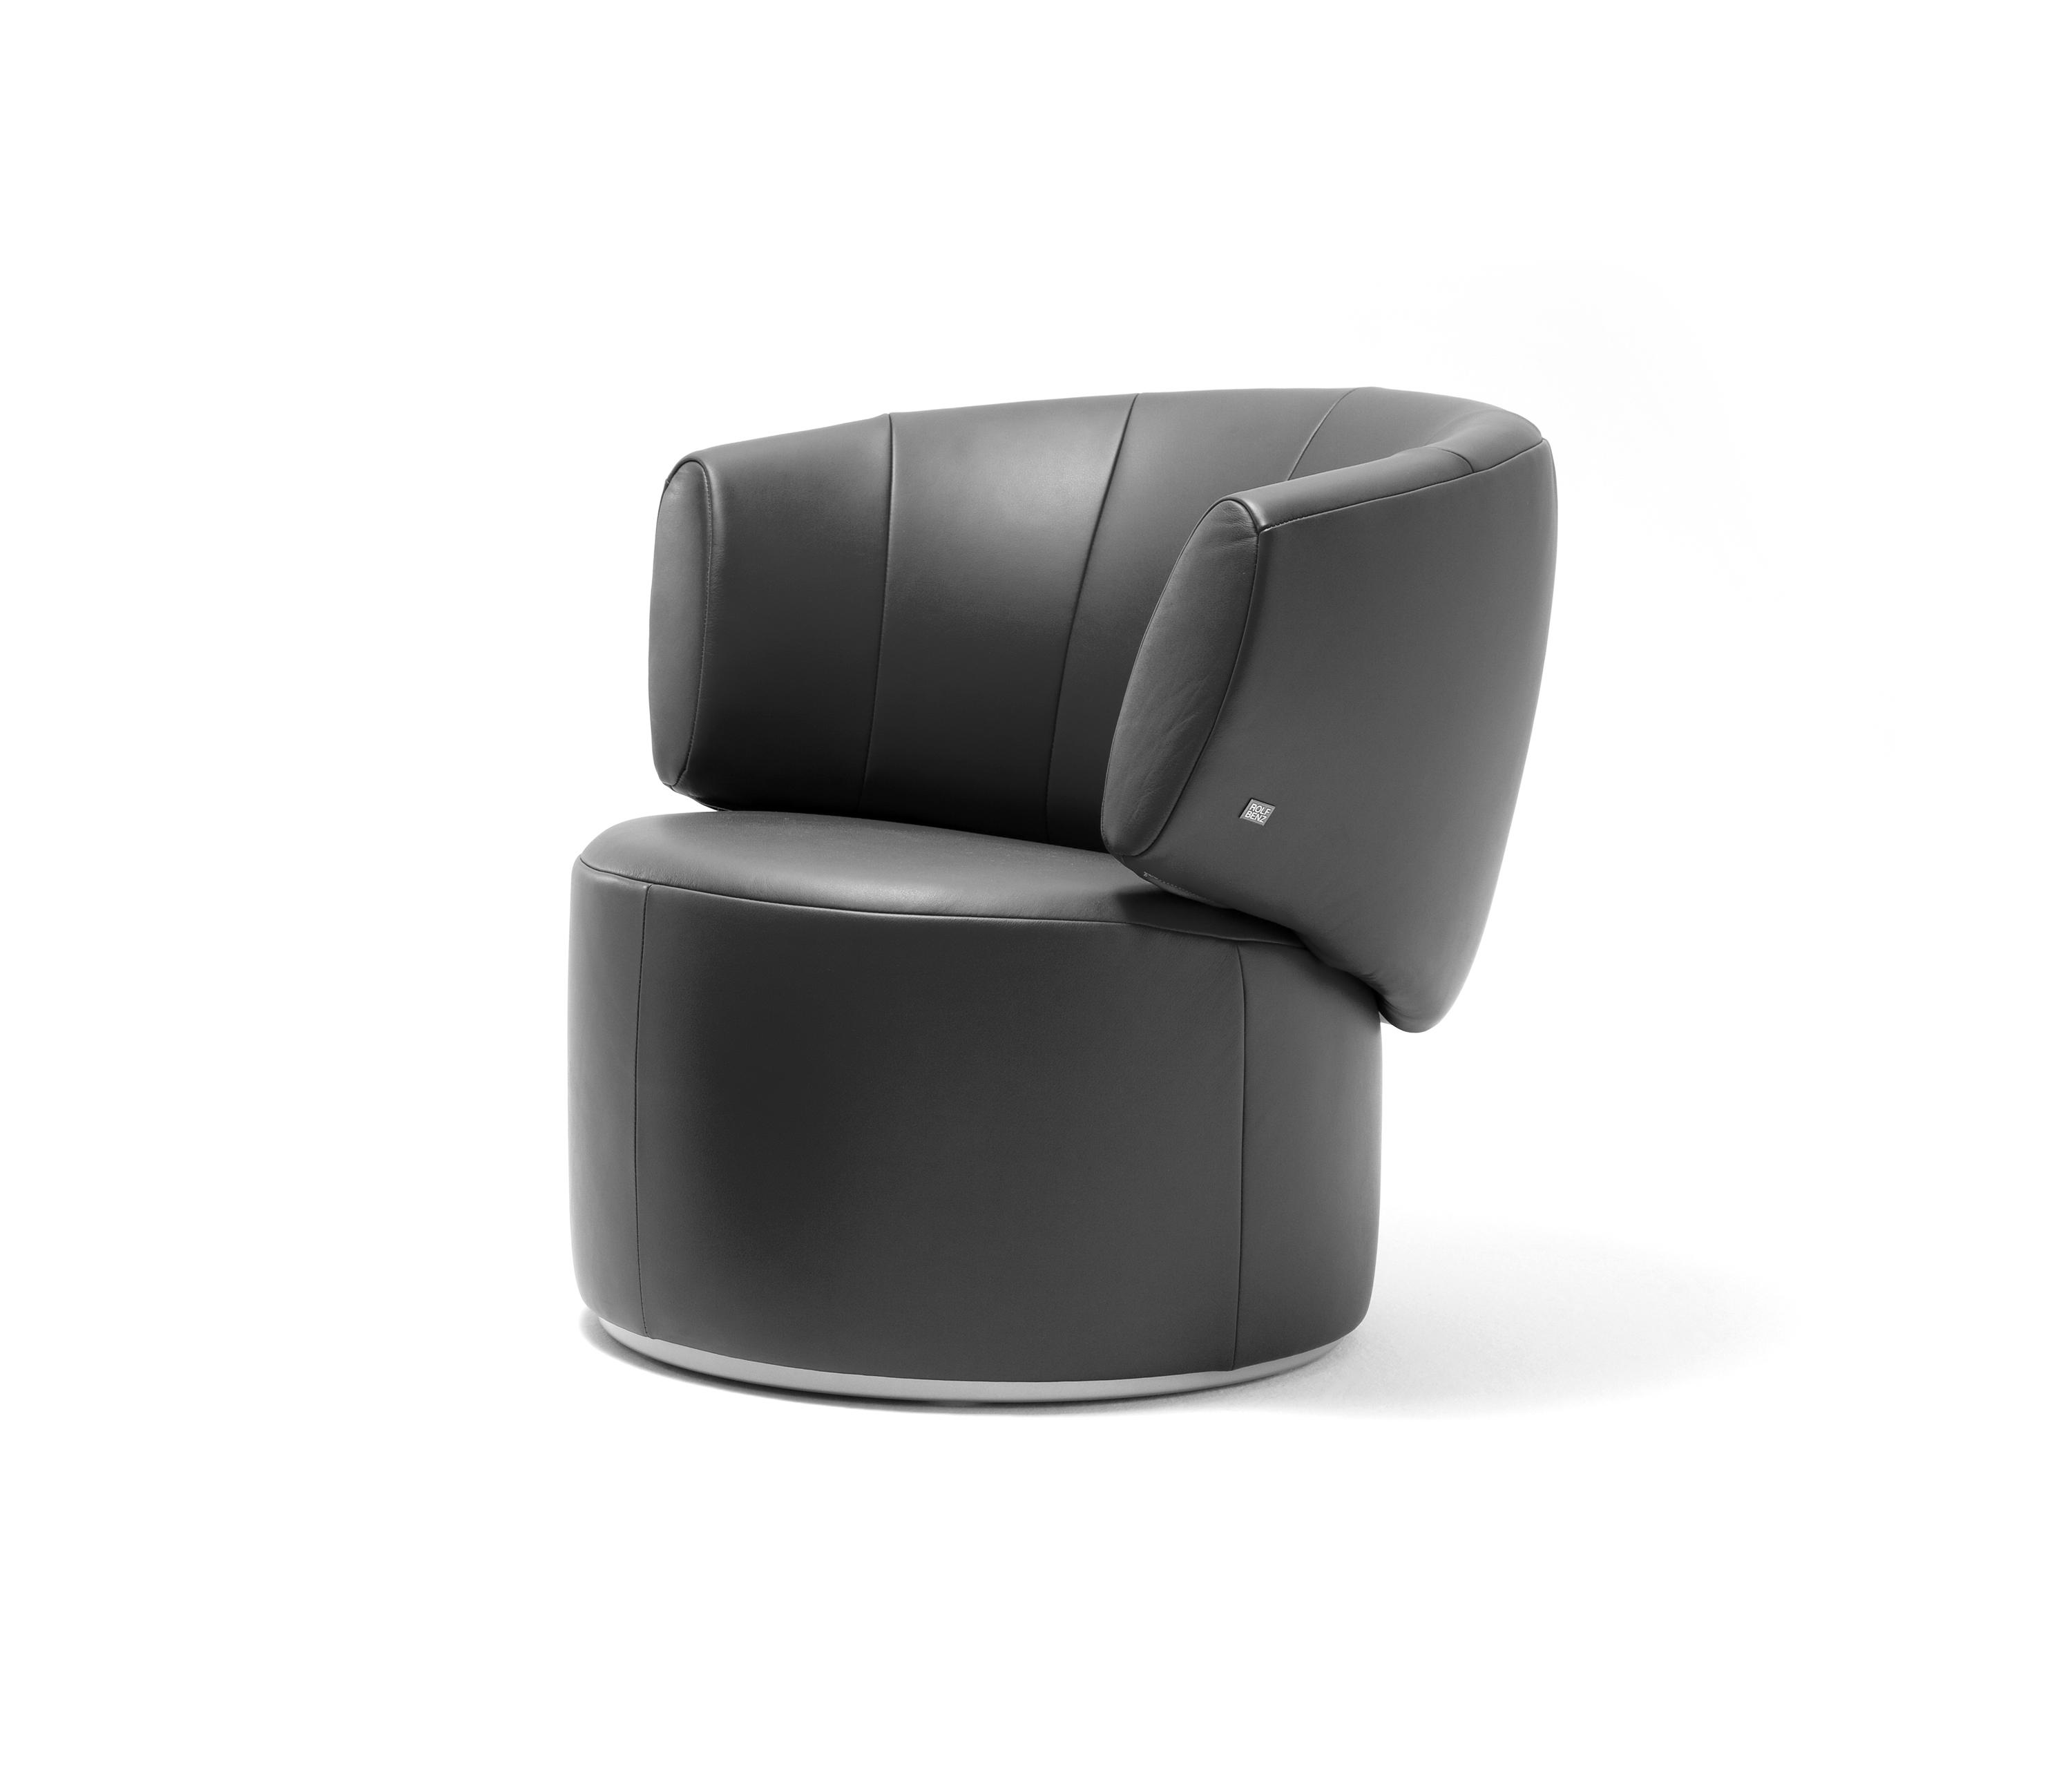 furniture rolf benz. rolf benz 684 by lounge chairs furniture s